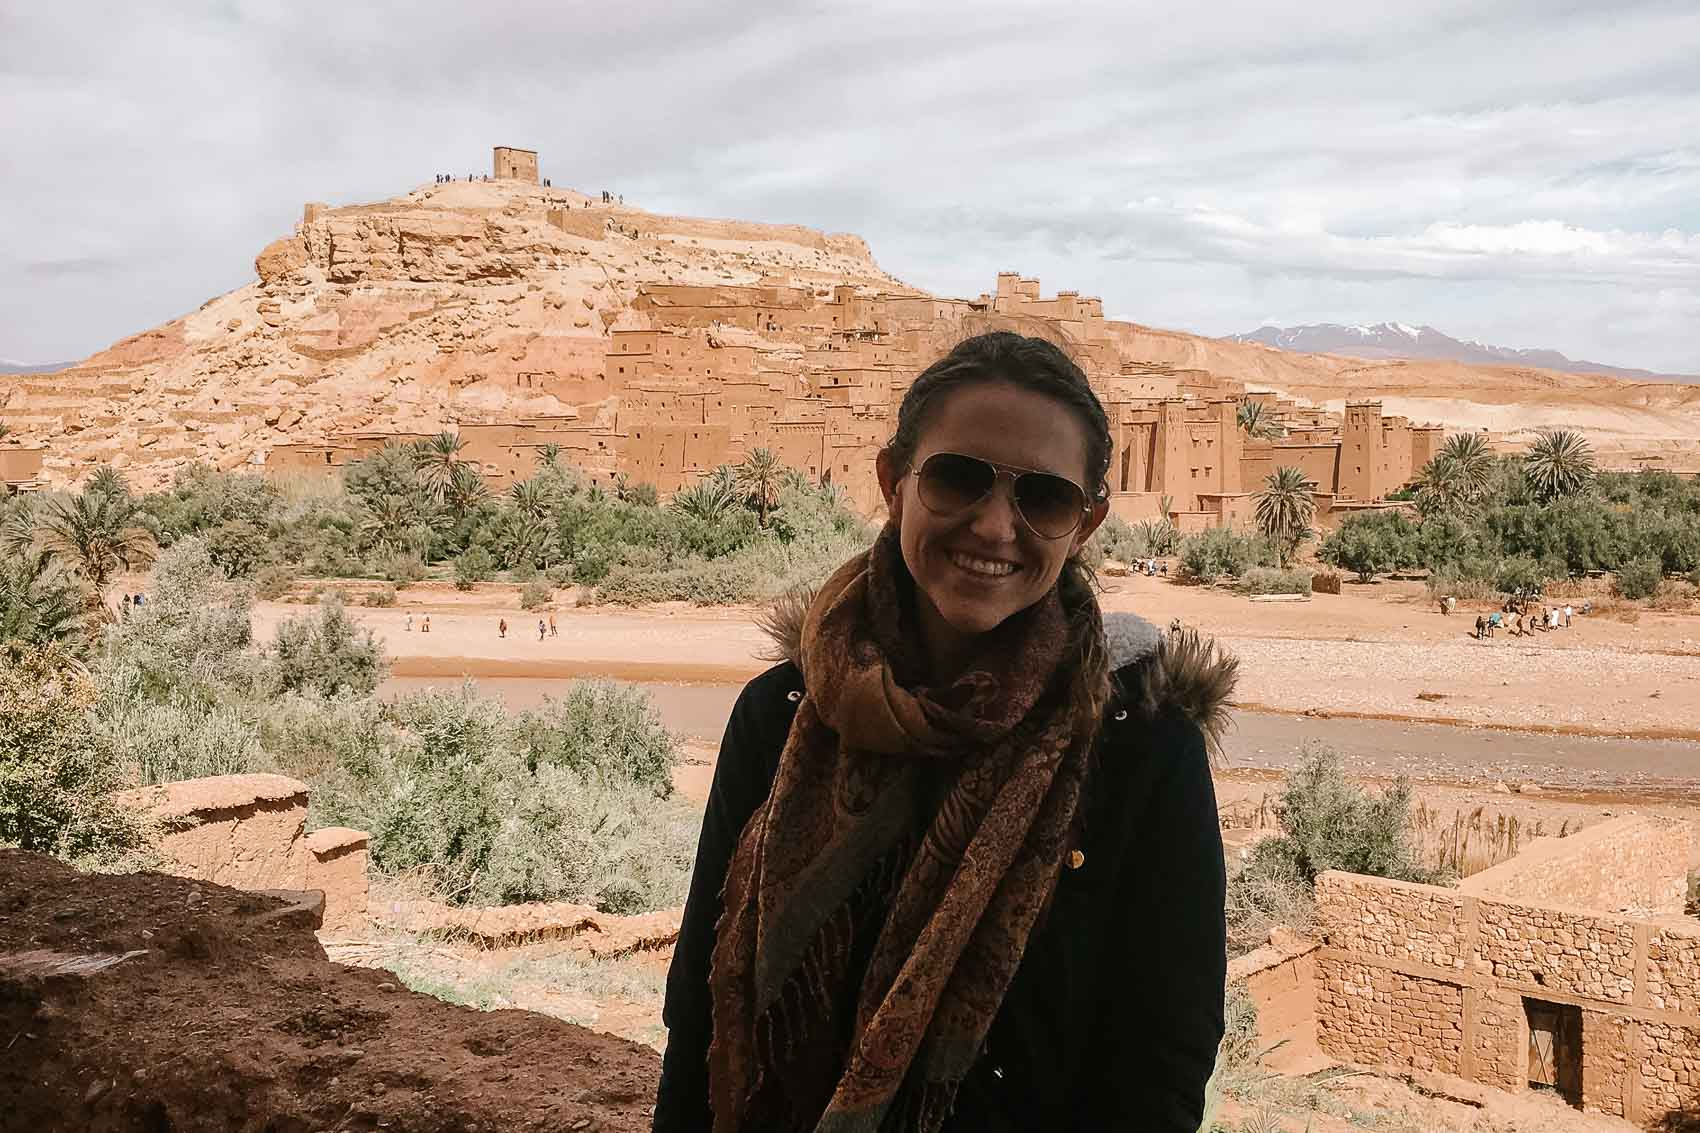 Hannah smiling at the camera with a historic kasbah in the background in Morocco - bucket list travel